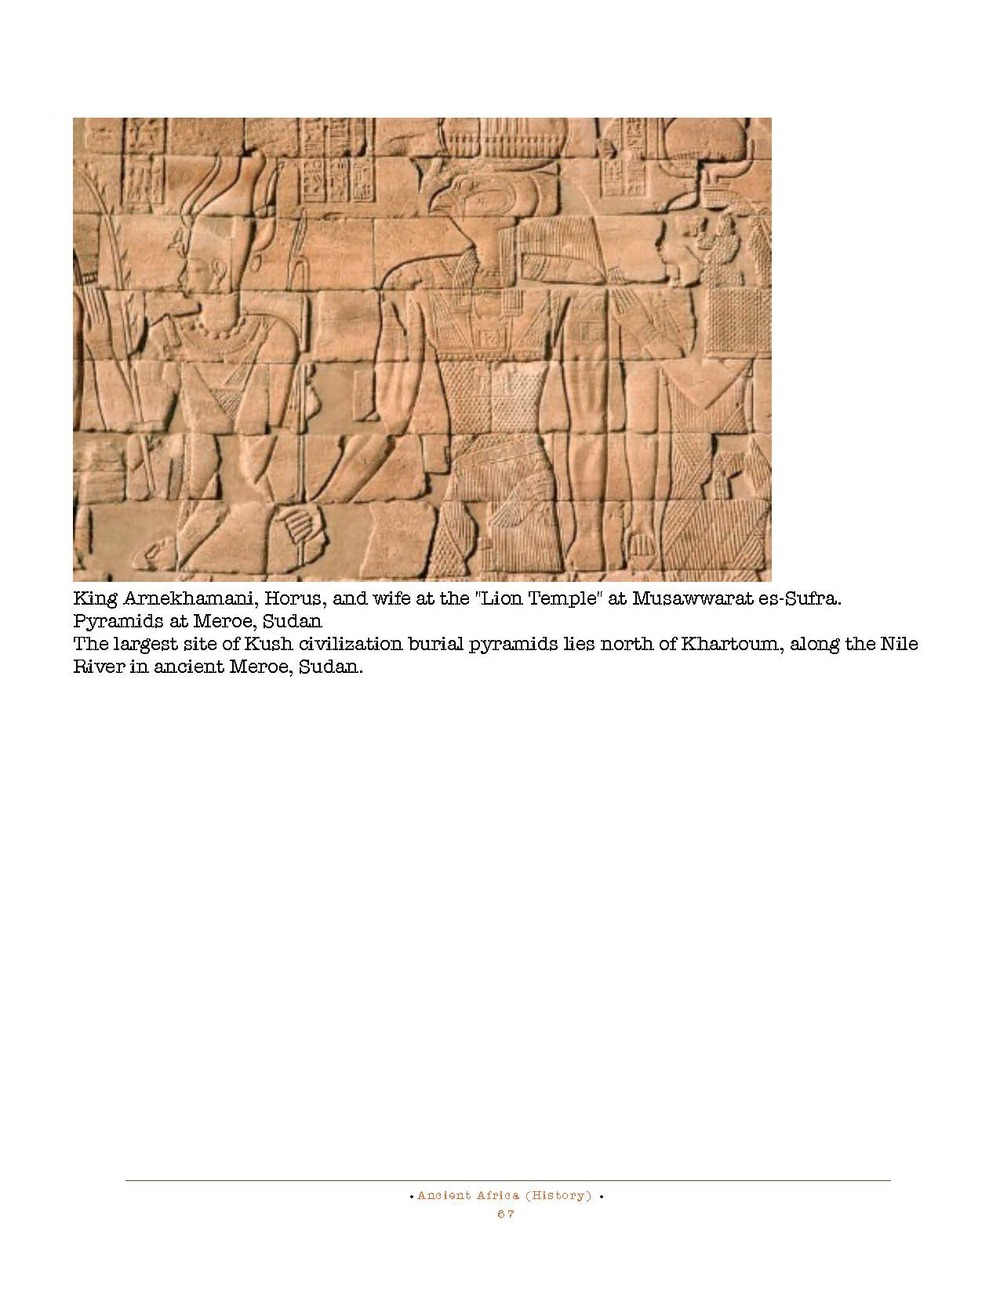 HOCE- Ancient Africa Notes_Page_067.jpg